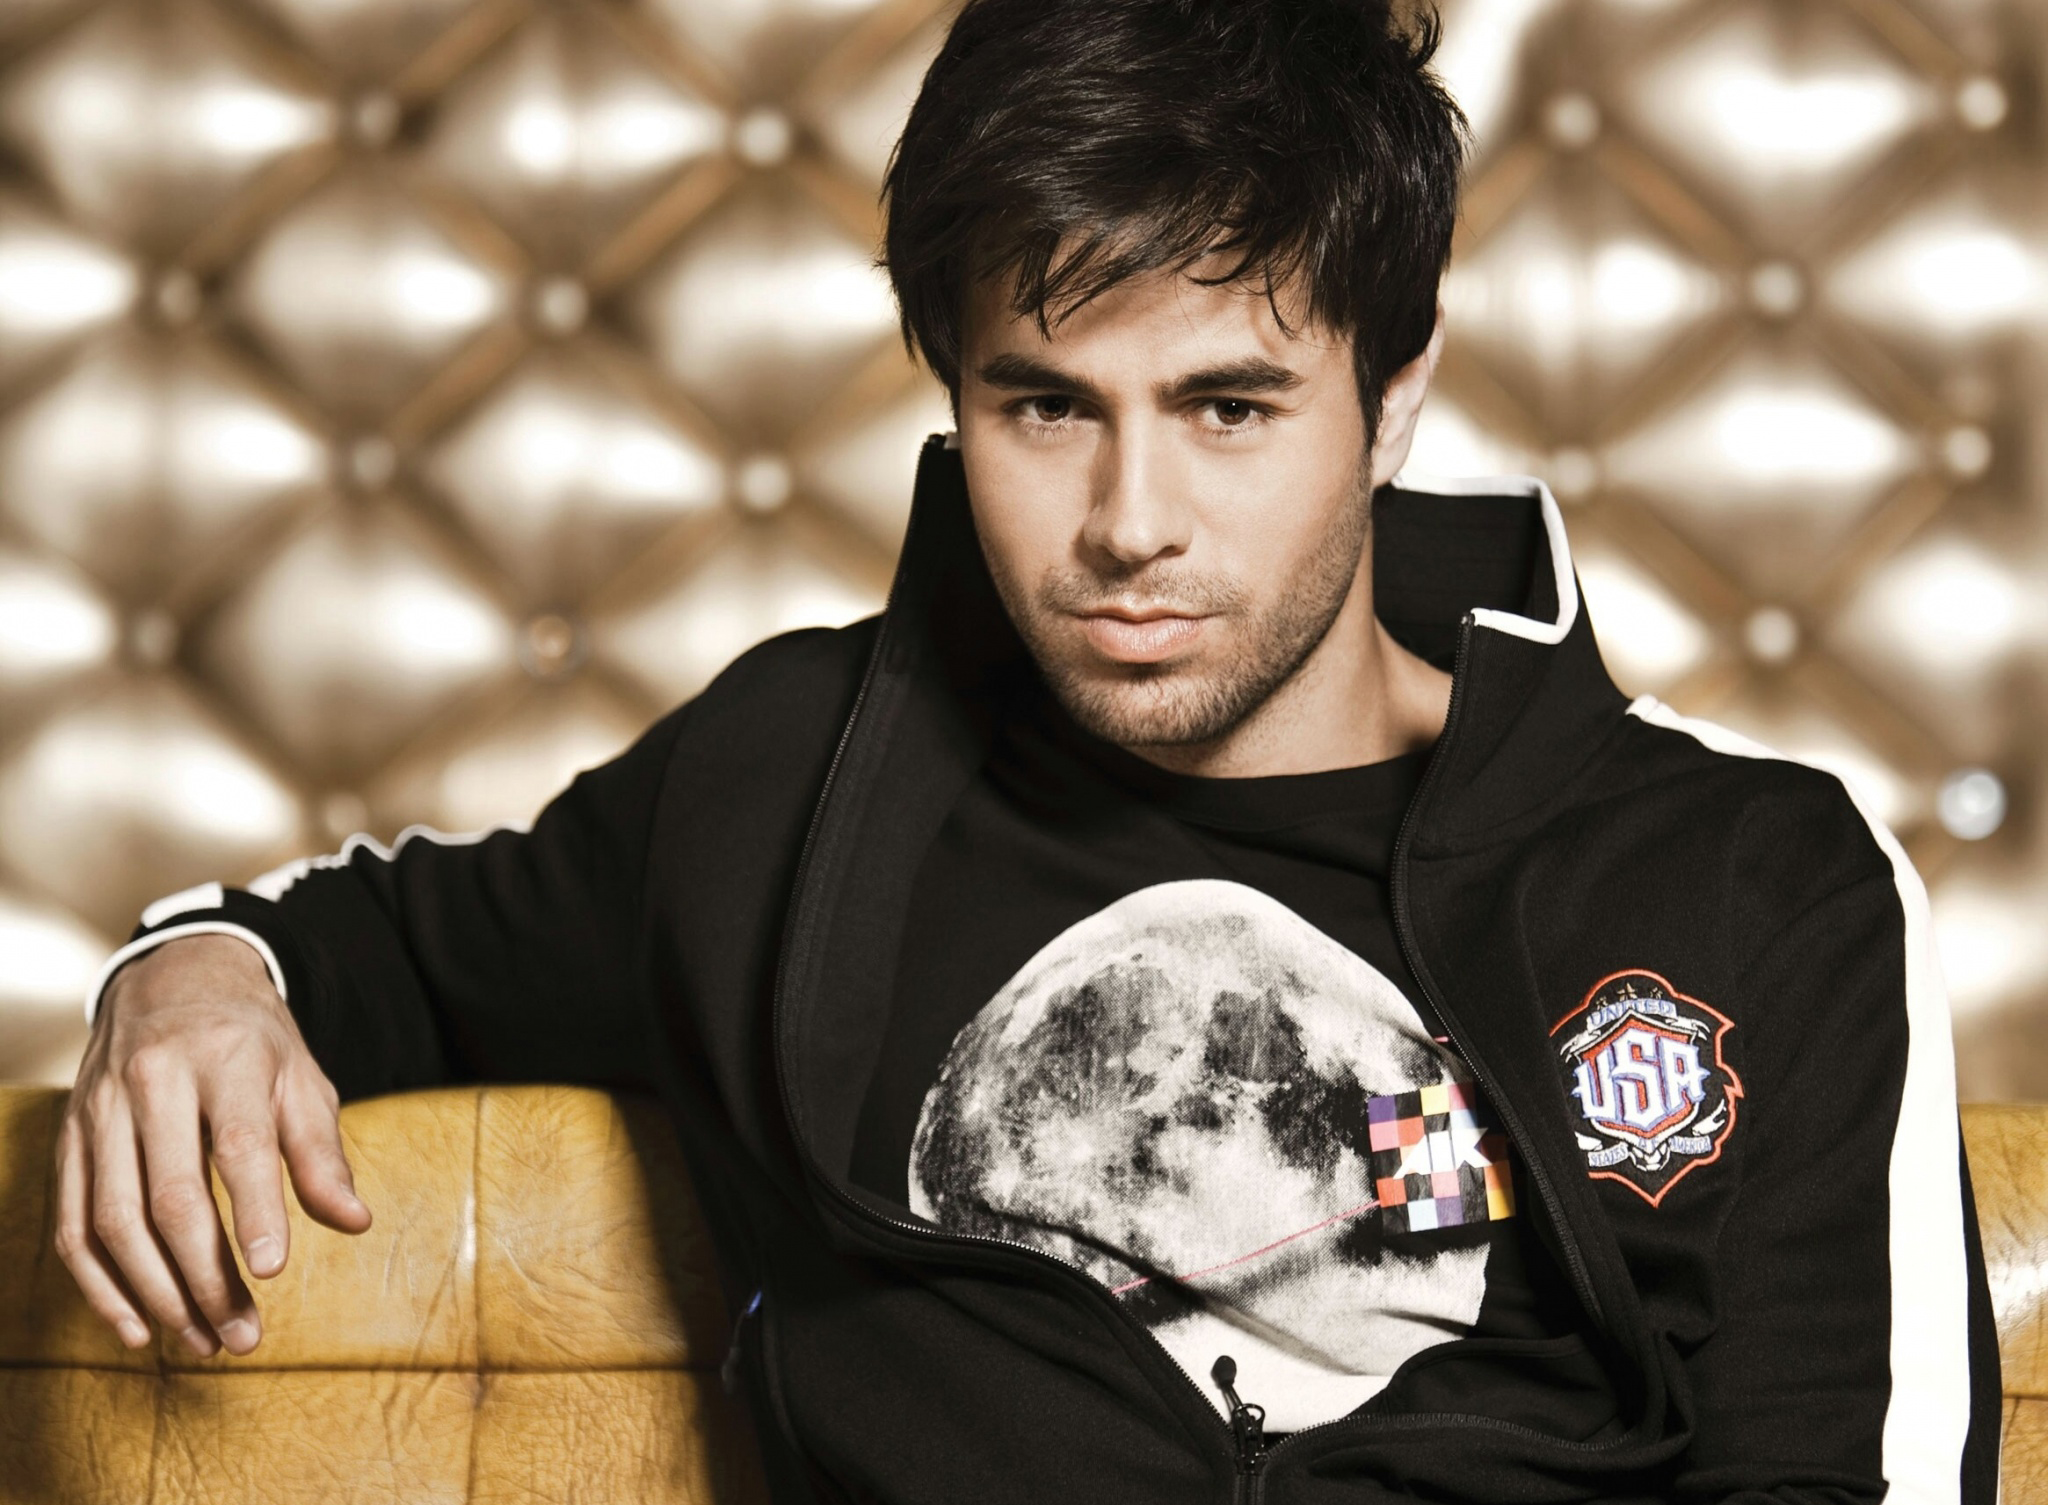 Enrique Iglesias Wallpaper For Facebook | www.pixshark.com ...